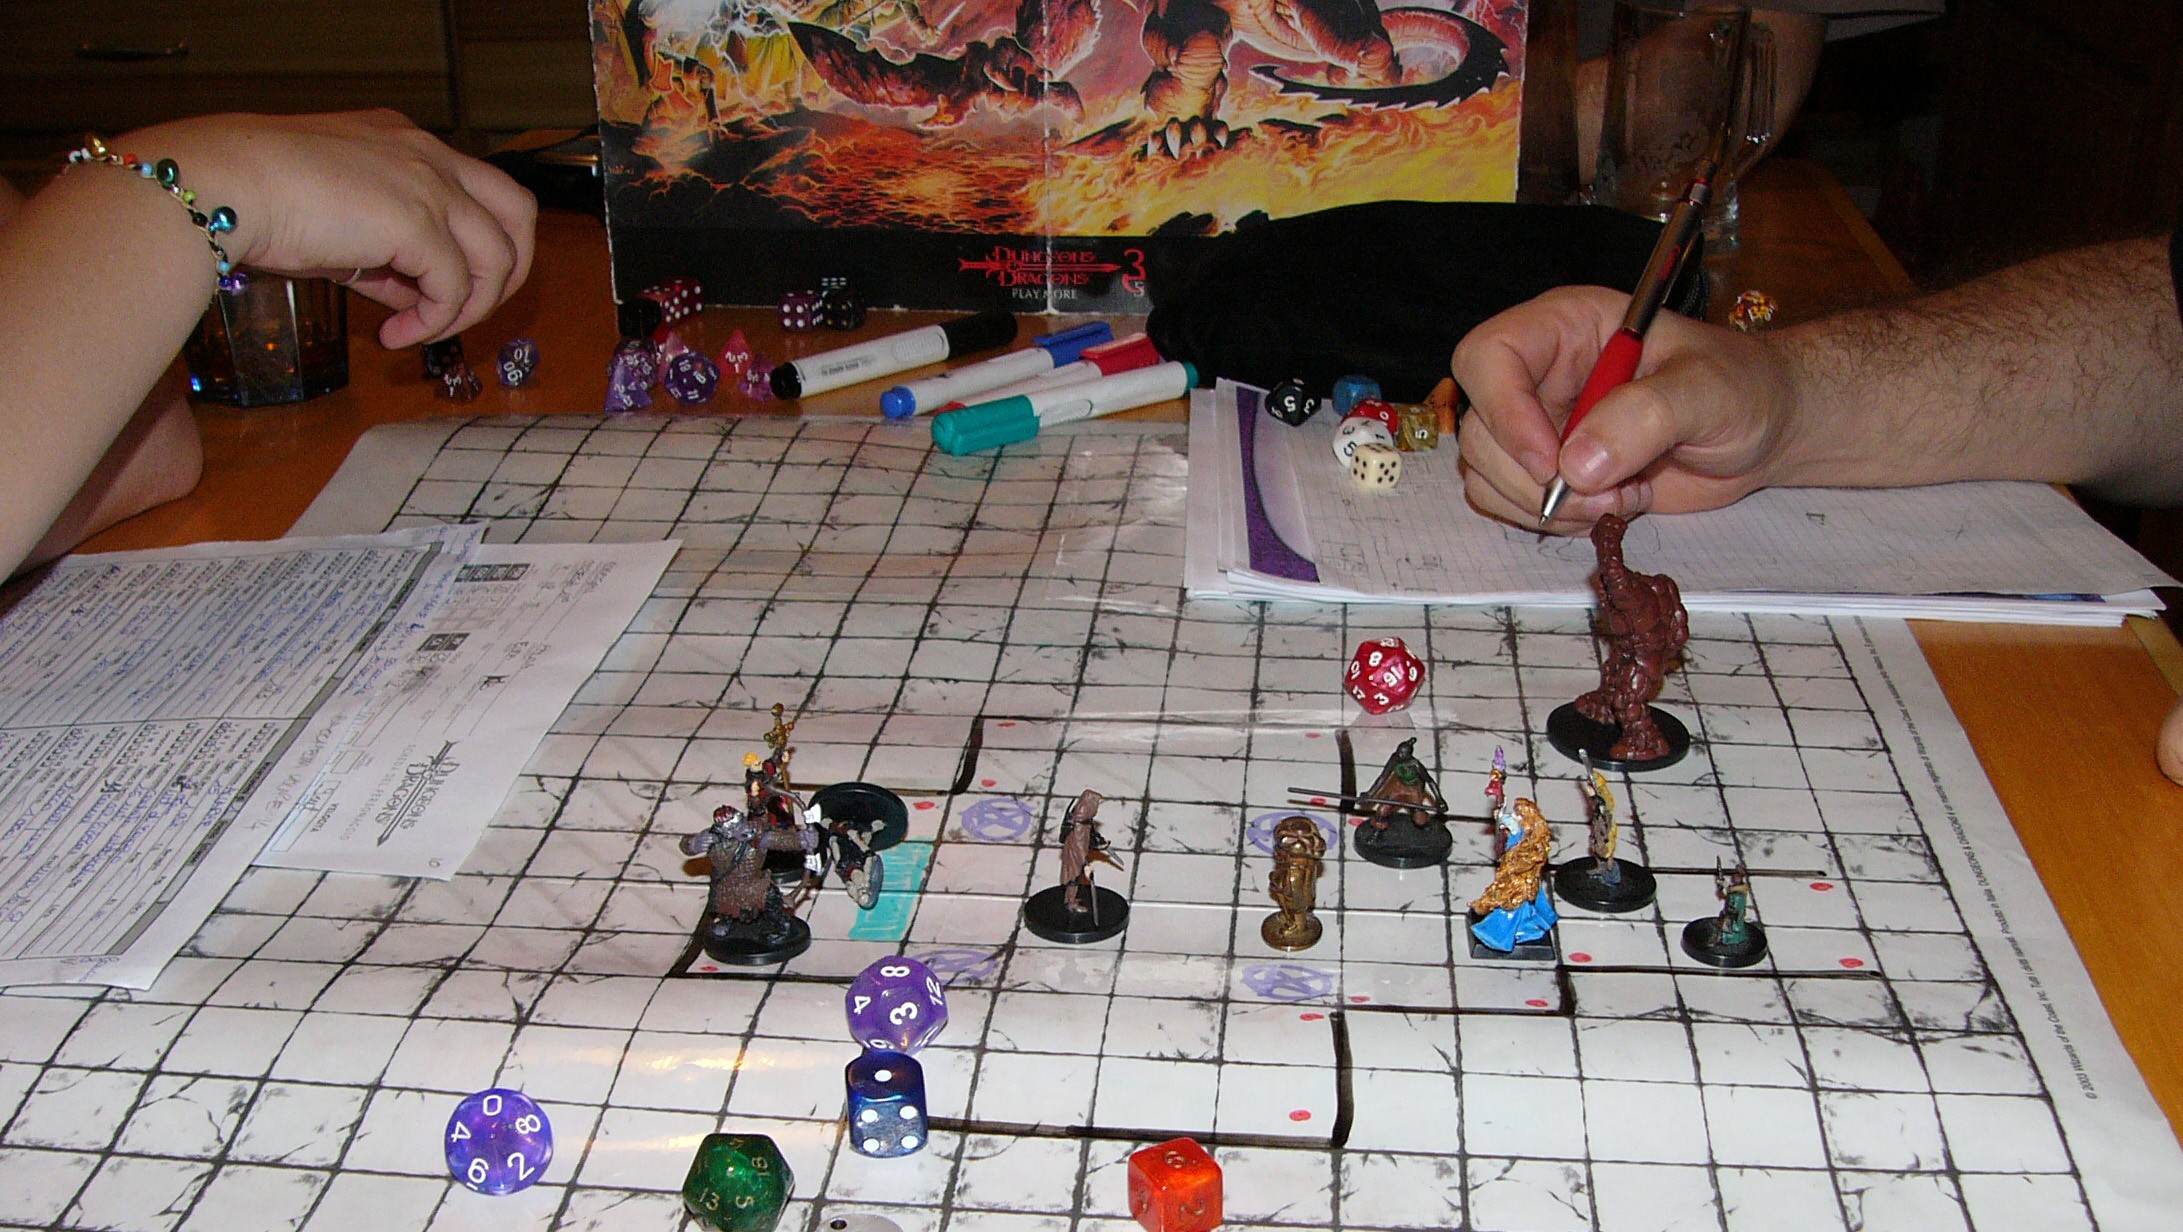 Mid-combat on a battle grid with figures and dice.